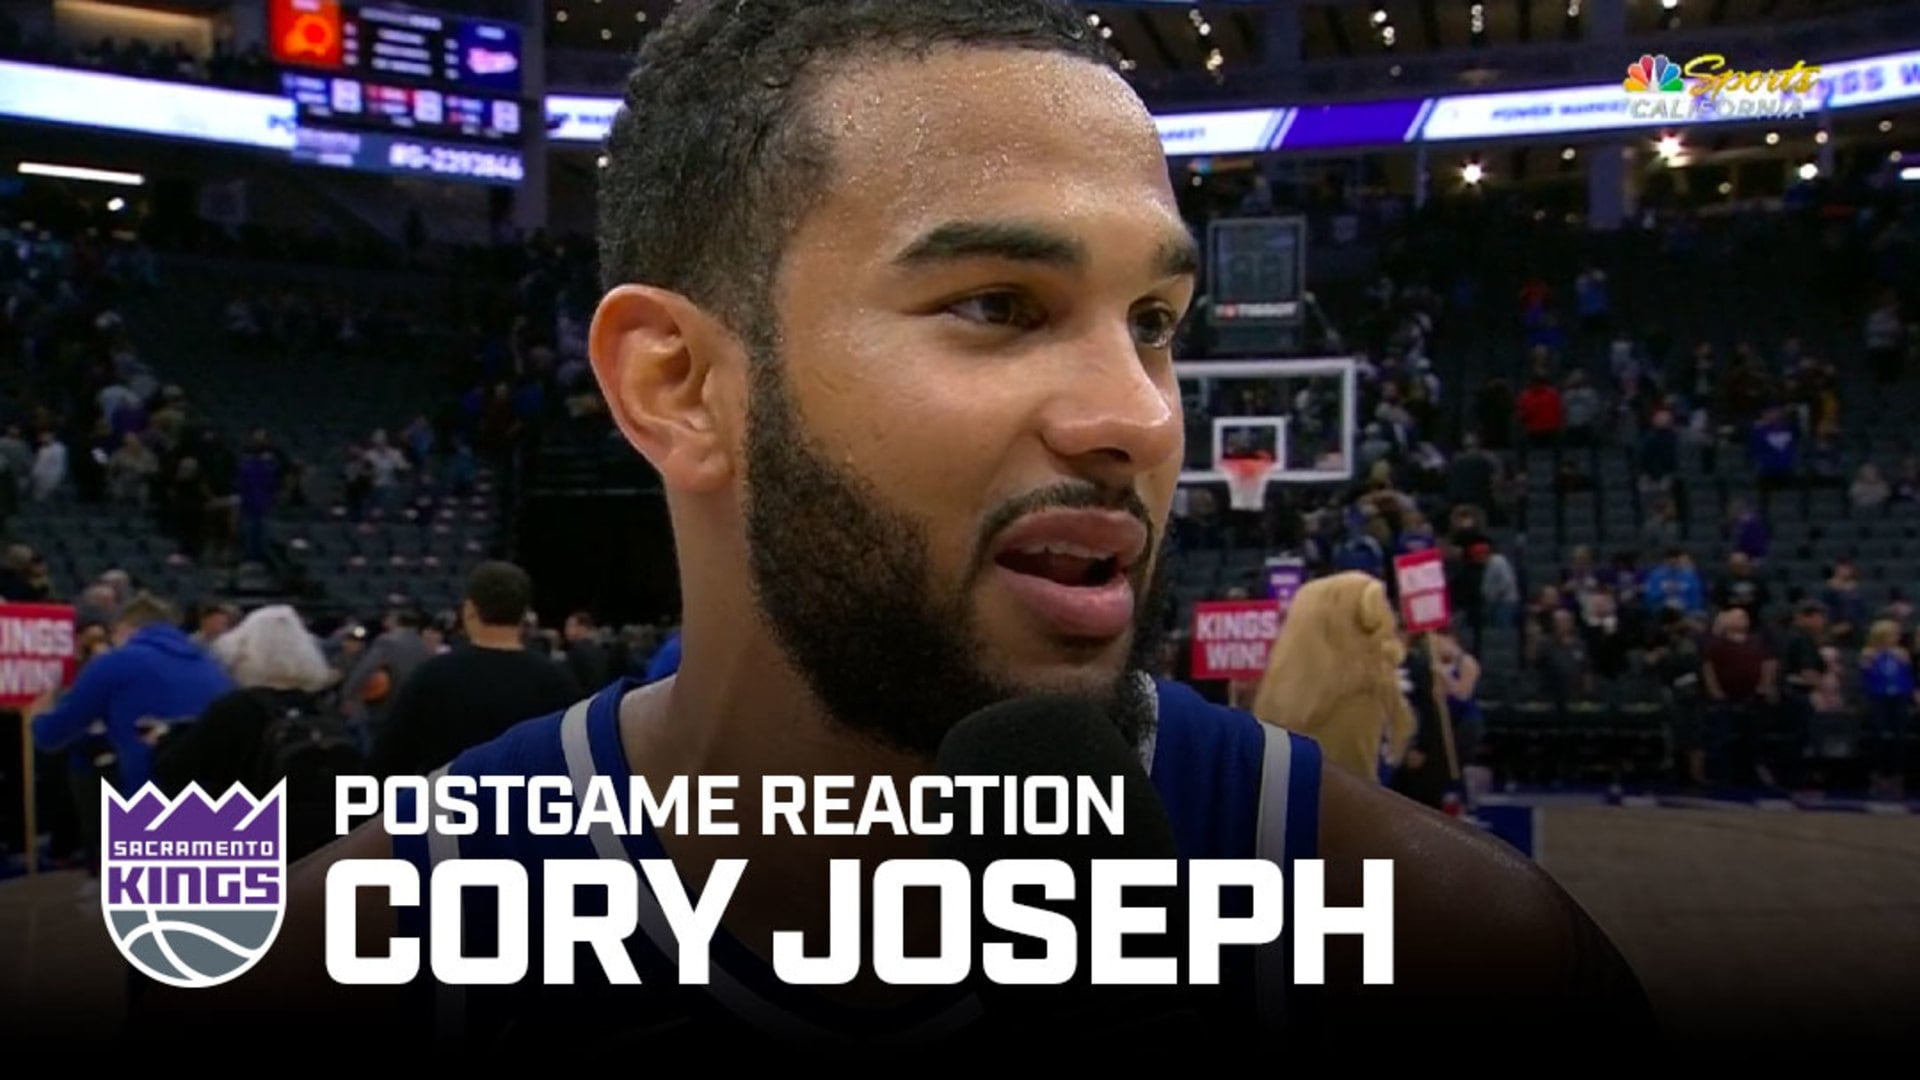 'I Do Whatever It Takes for Our Team to Win' | Cory Joseph Postgame Reaction 11.19.19